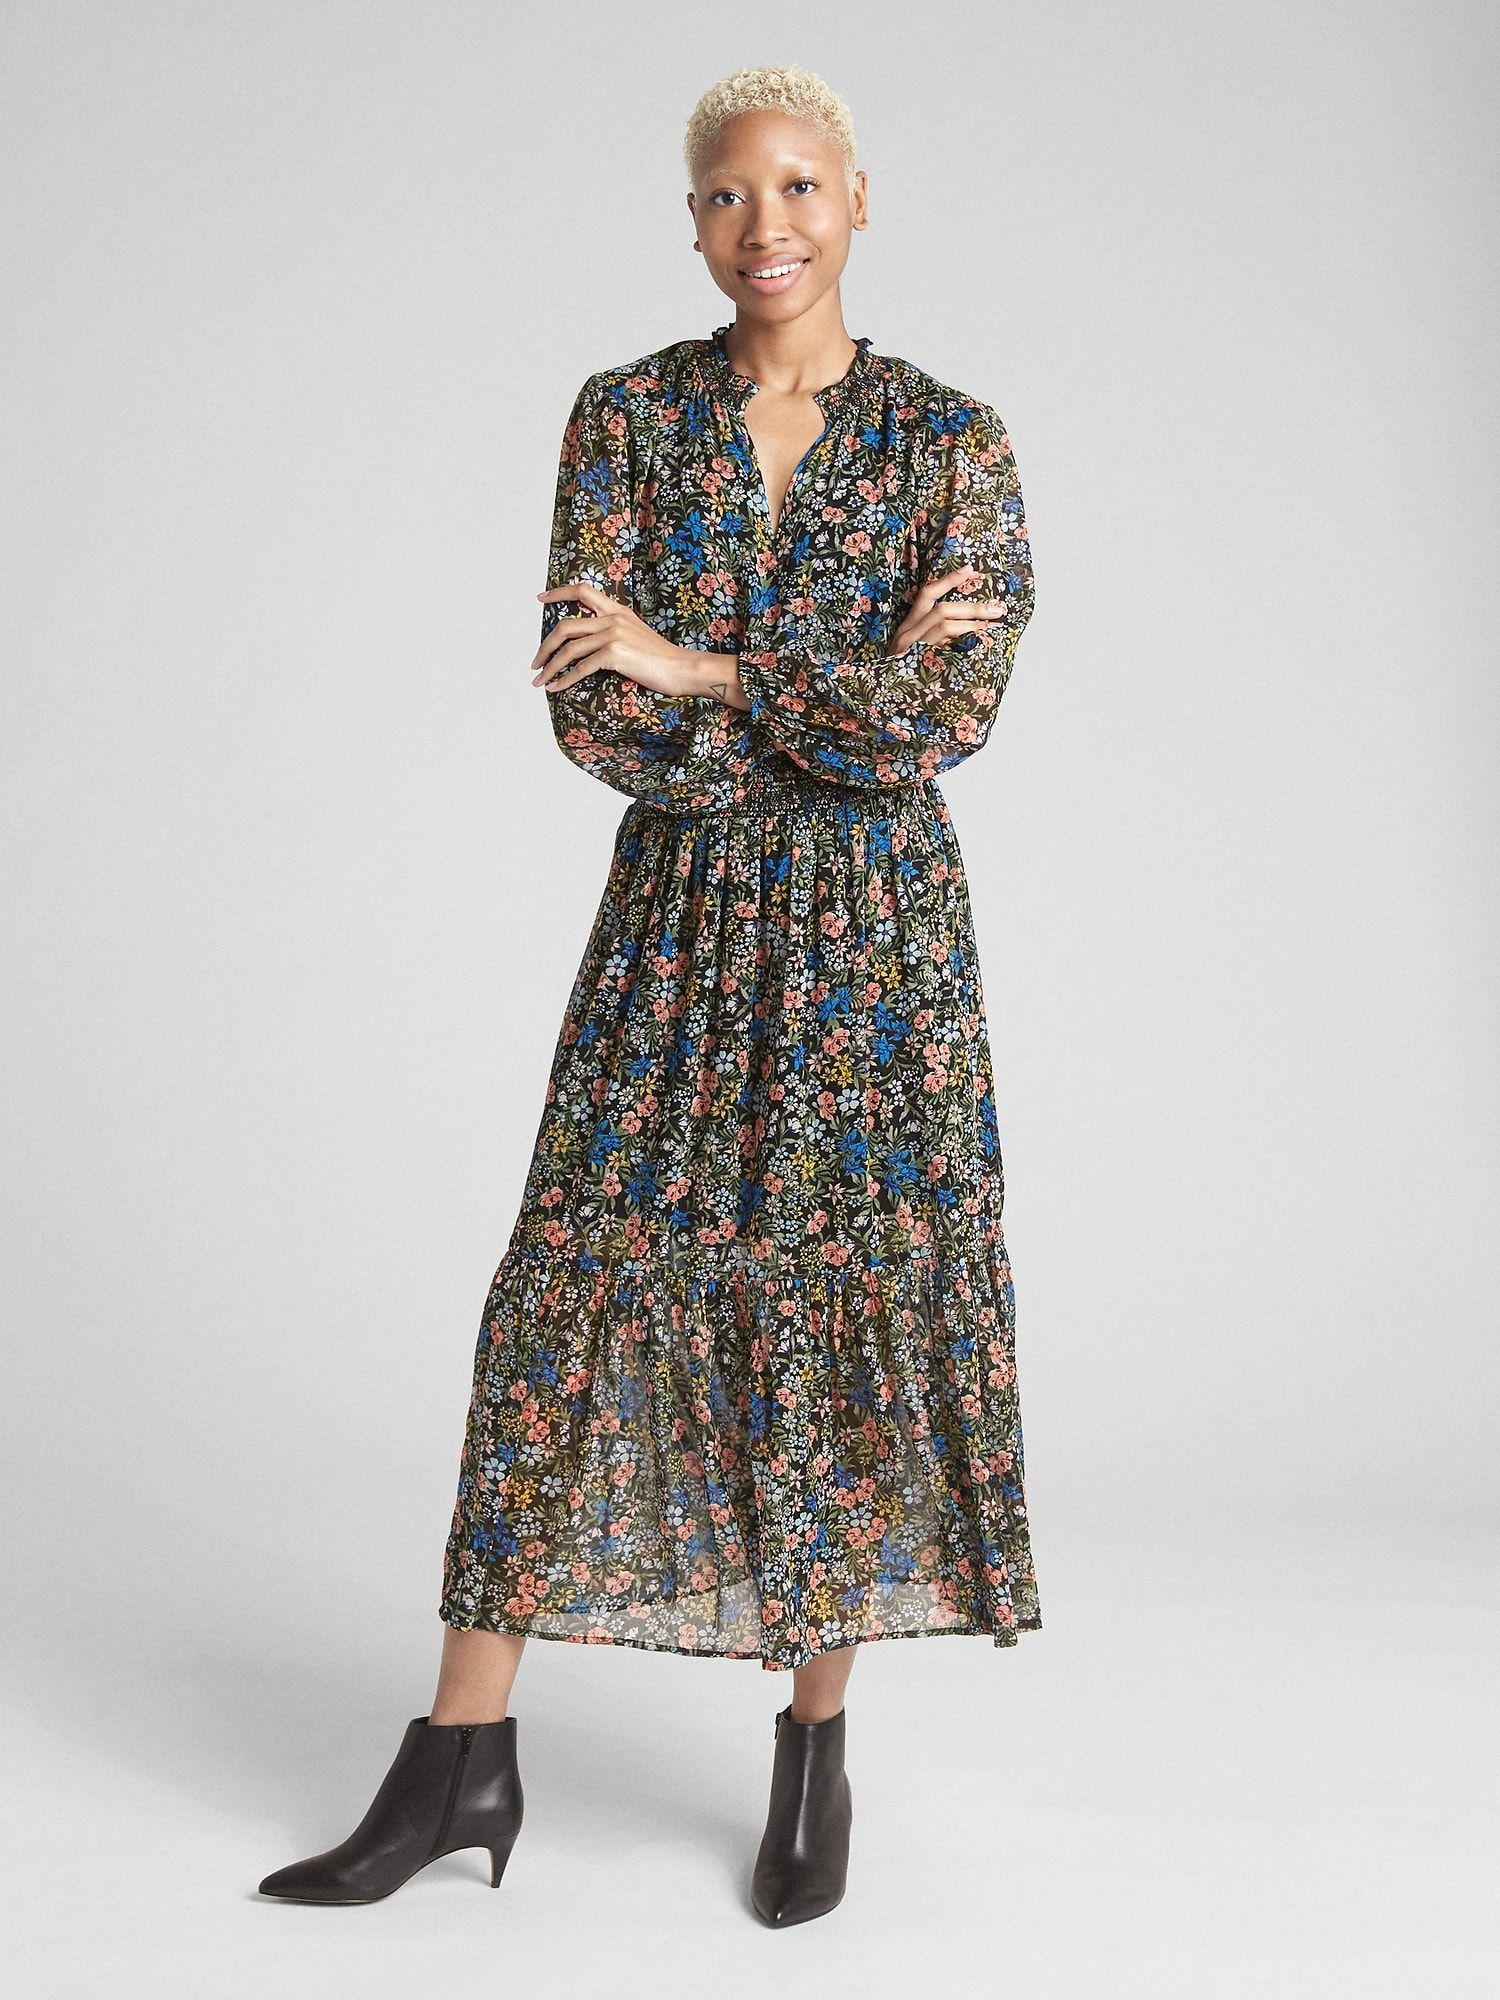 374b20b2 Floral Print Long Sleeve Smocked Midi Dress | Gap | Print and ...